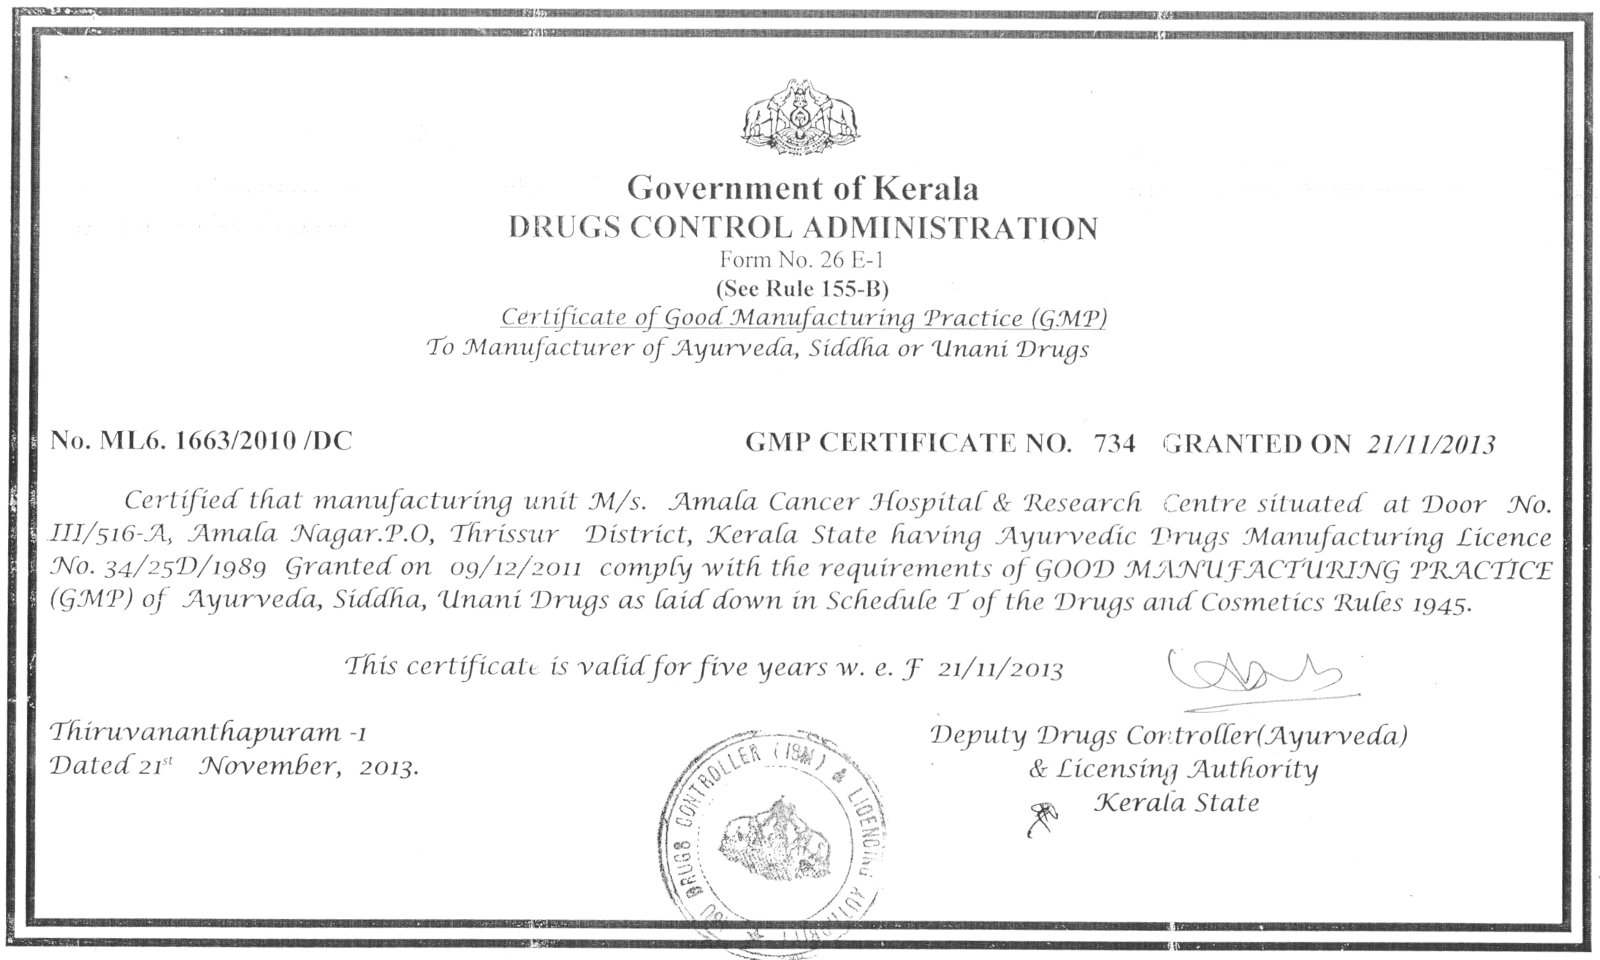 ISO Certified, GMP Certified, Green Leaf Accreditated, NABH Approved